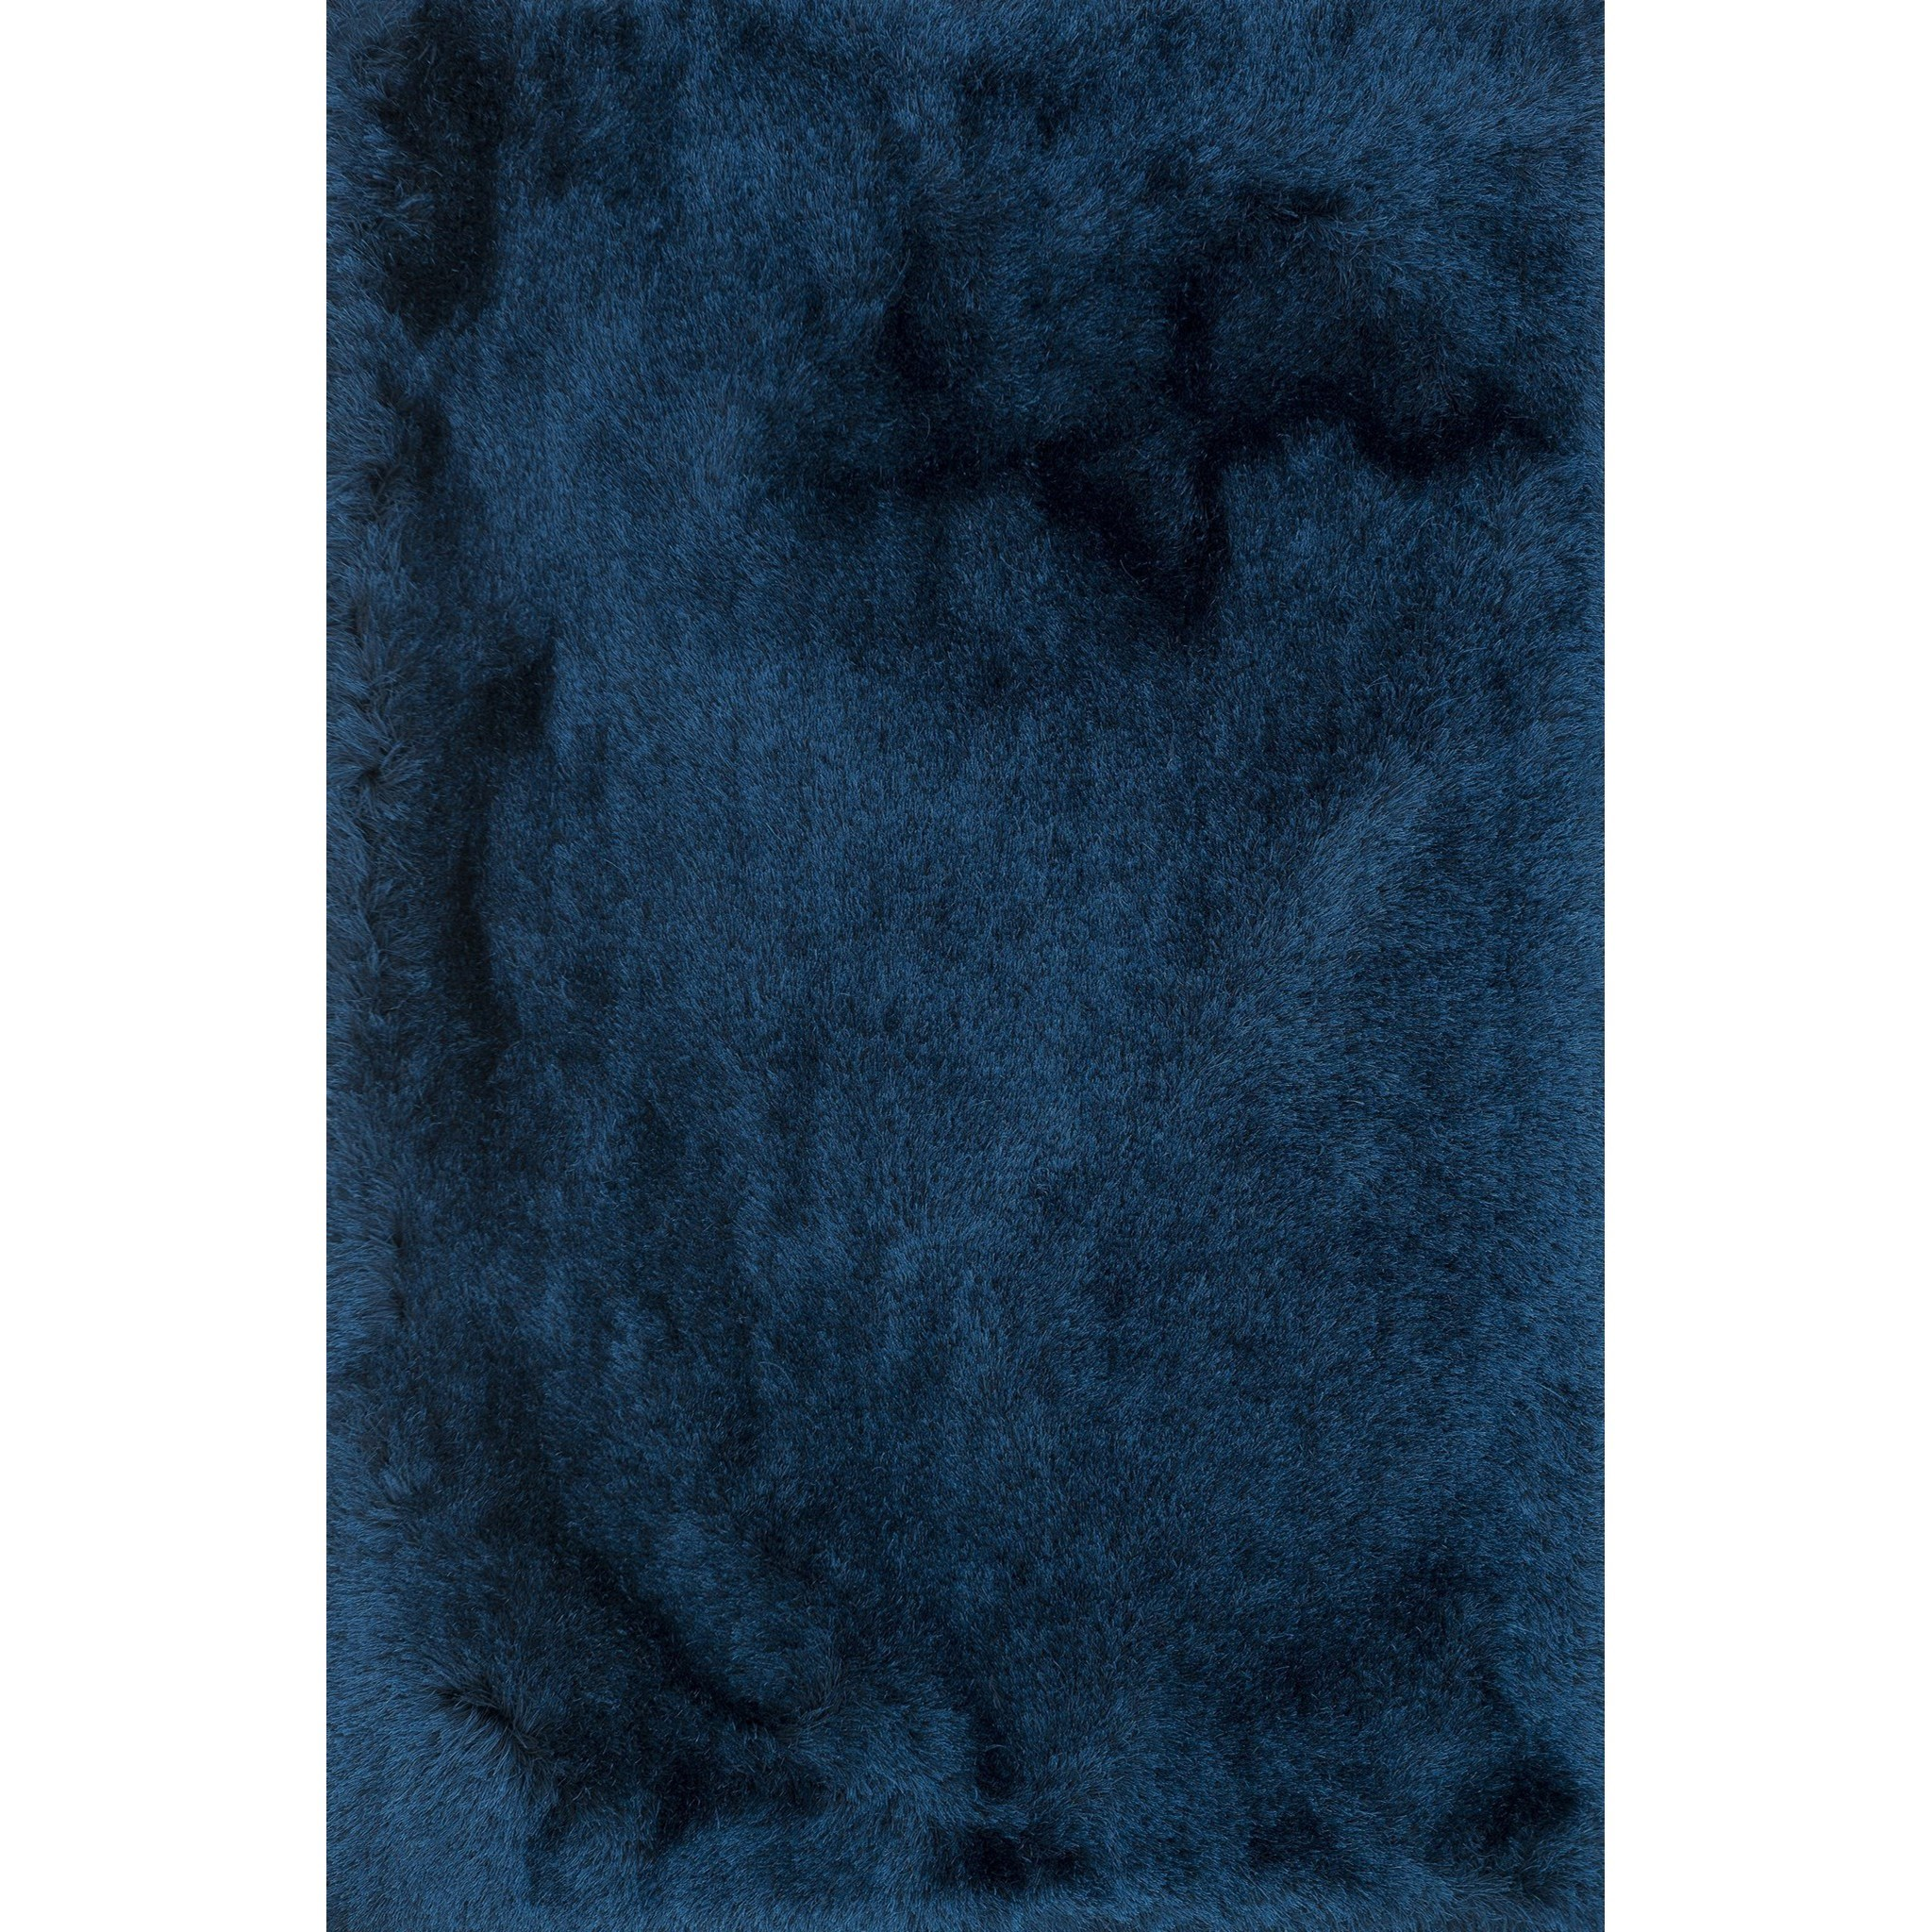 "Allure Shag 5'-0"" x 7'-6"" Area Rug by Loloi Rugs at Virginia Furniture Market"